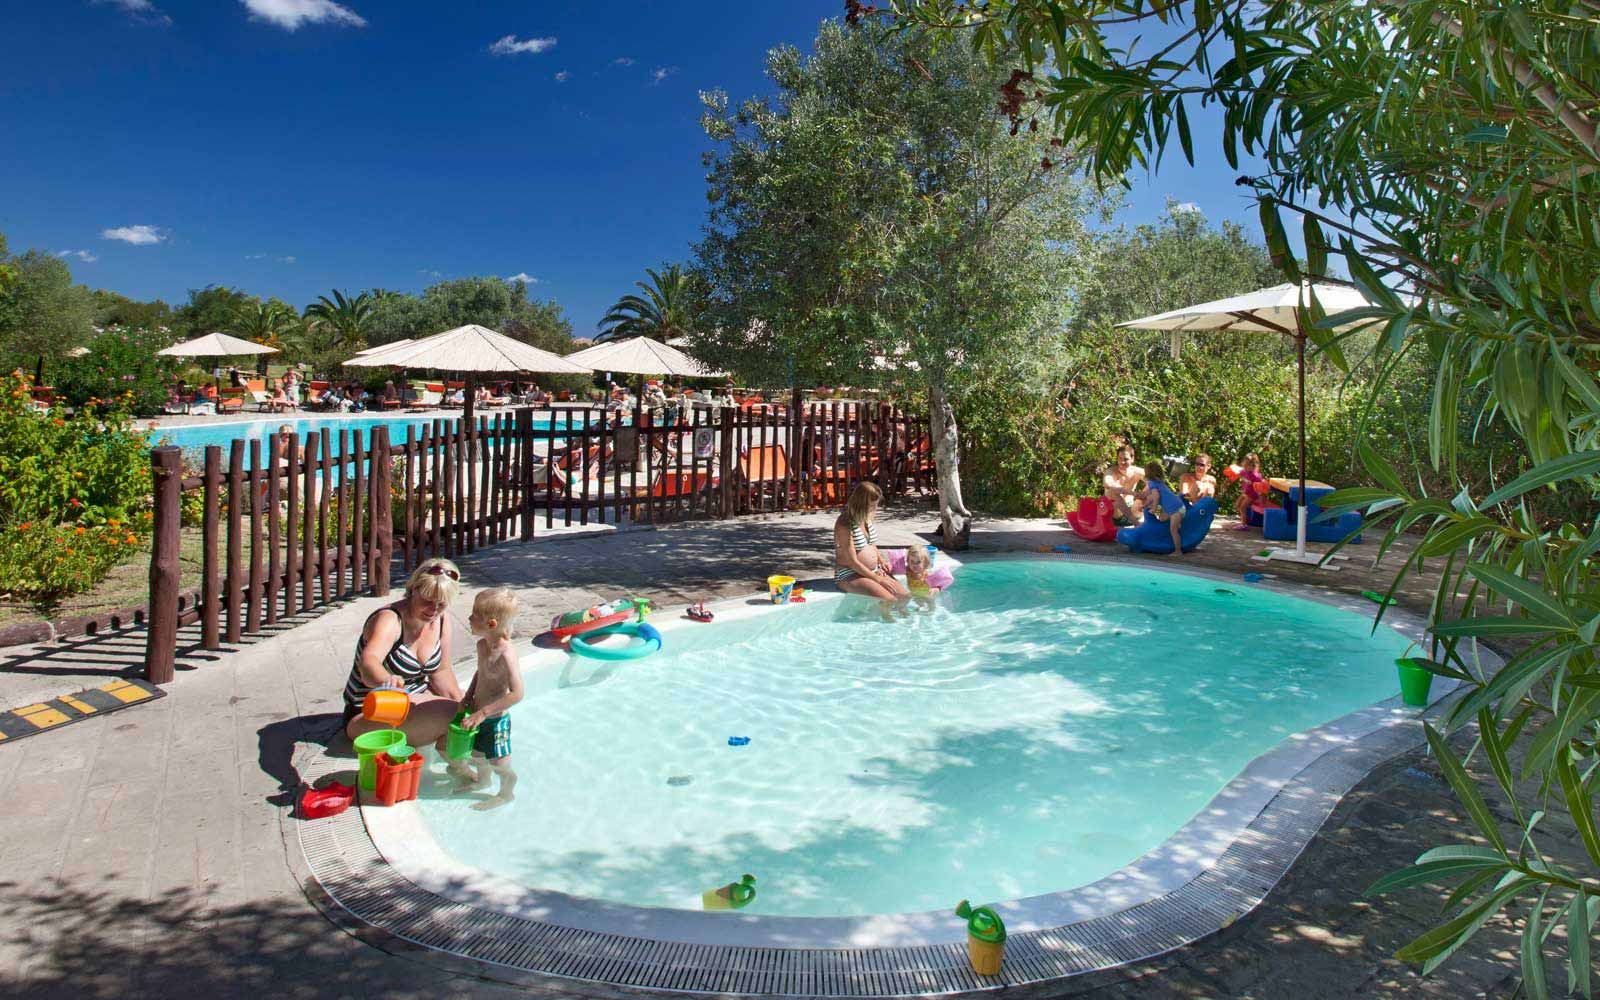 Kids pool at Resort Cala Di Falco La Rotonda Residence